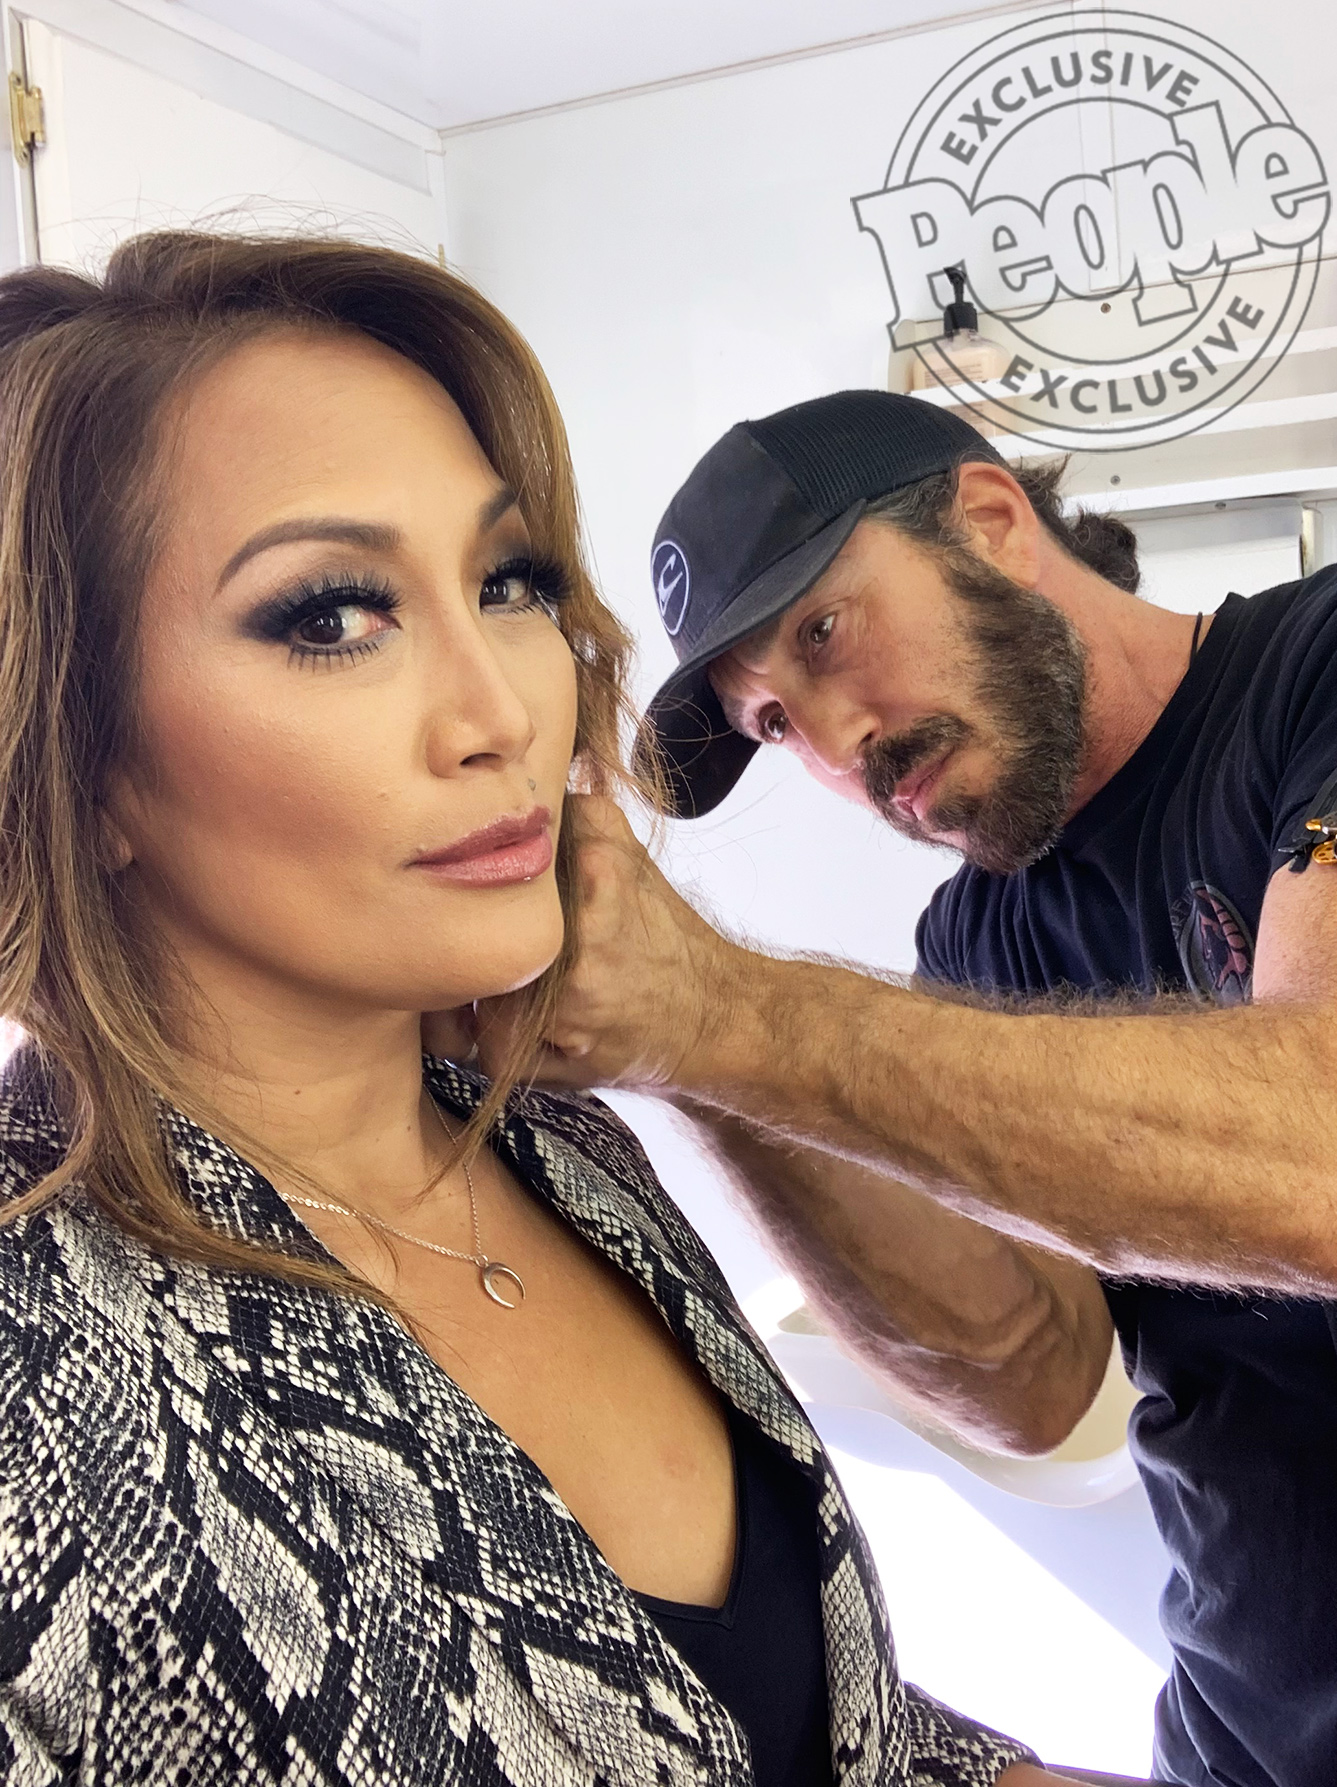 Carrie Ann inaba DWTS looks